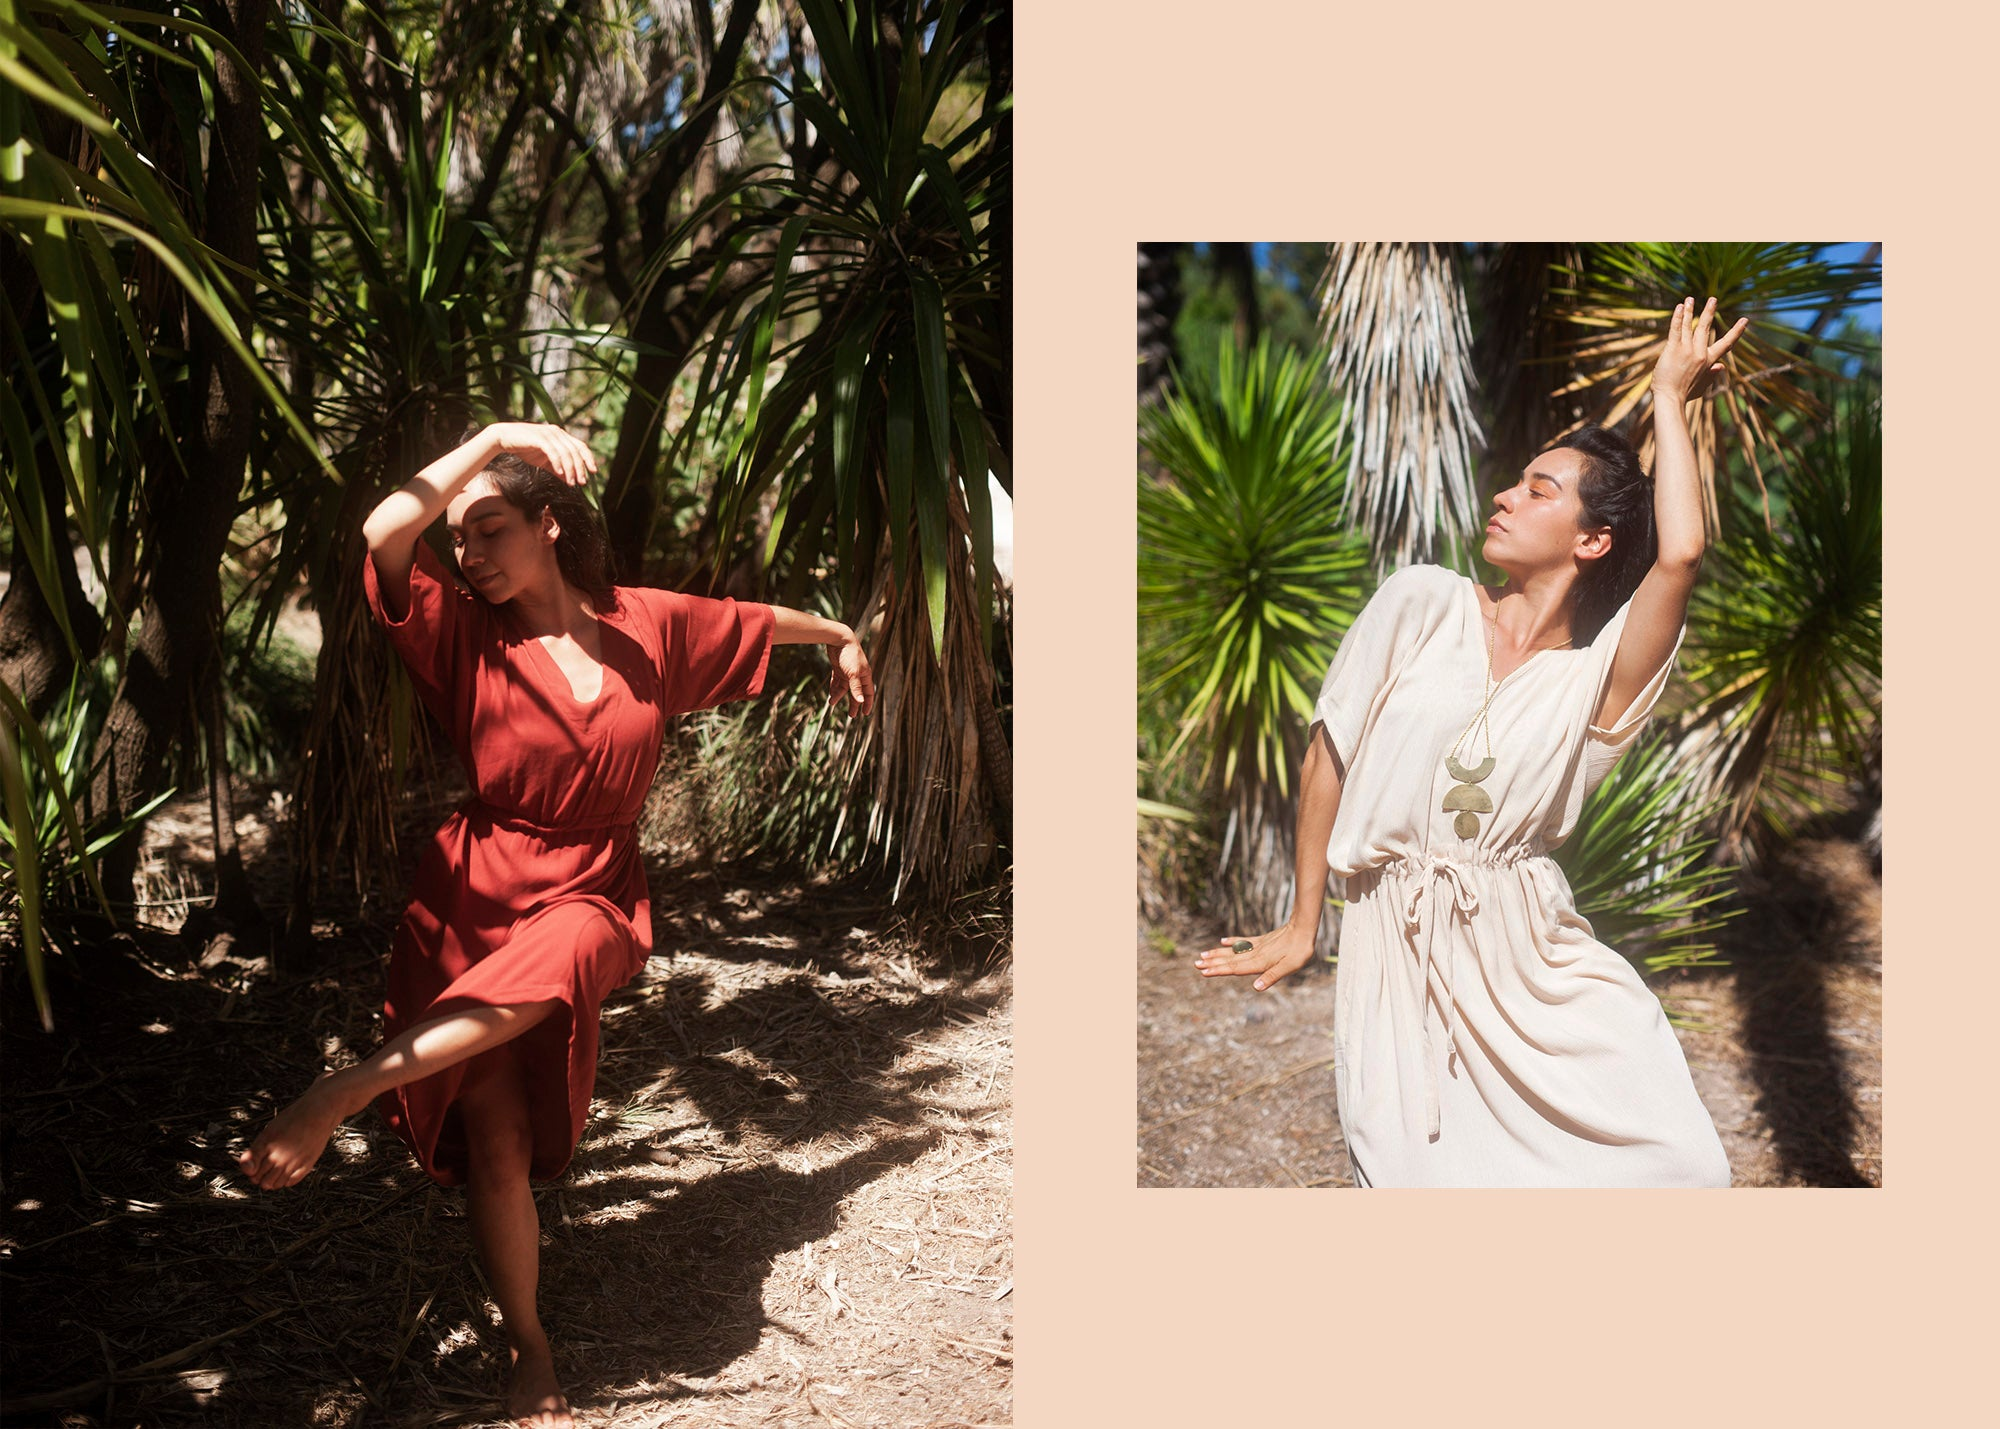 dual image of a woman wearing a red and palm dresses dancing amoung trees